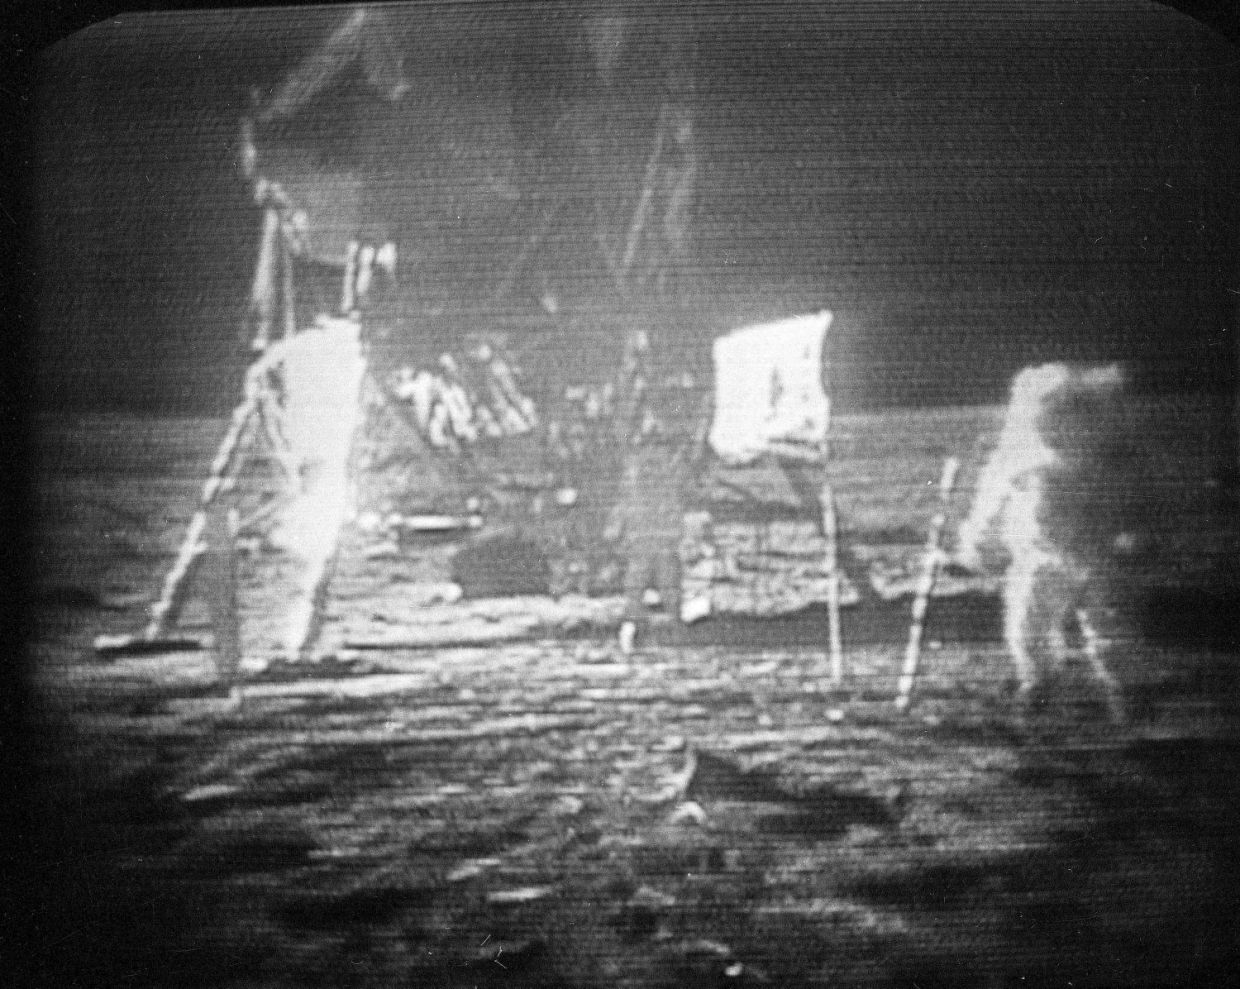 Apollo 11 astronaut Neil Armstrong, trudges across the surface of the moon leaving behind footprints, July 20, 1969. Space lawyer Michelle Hanlon argues that the footprints qualify under conservation law.